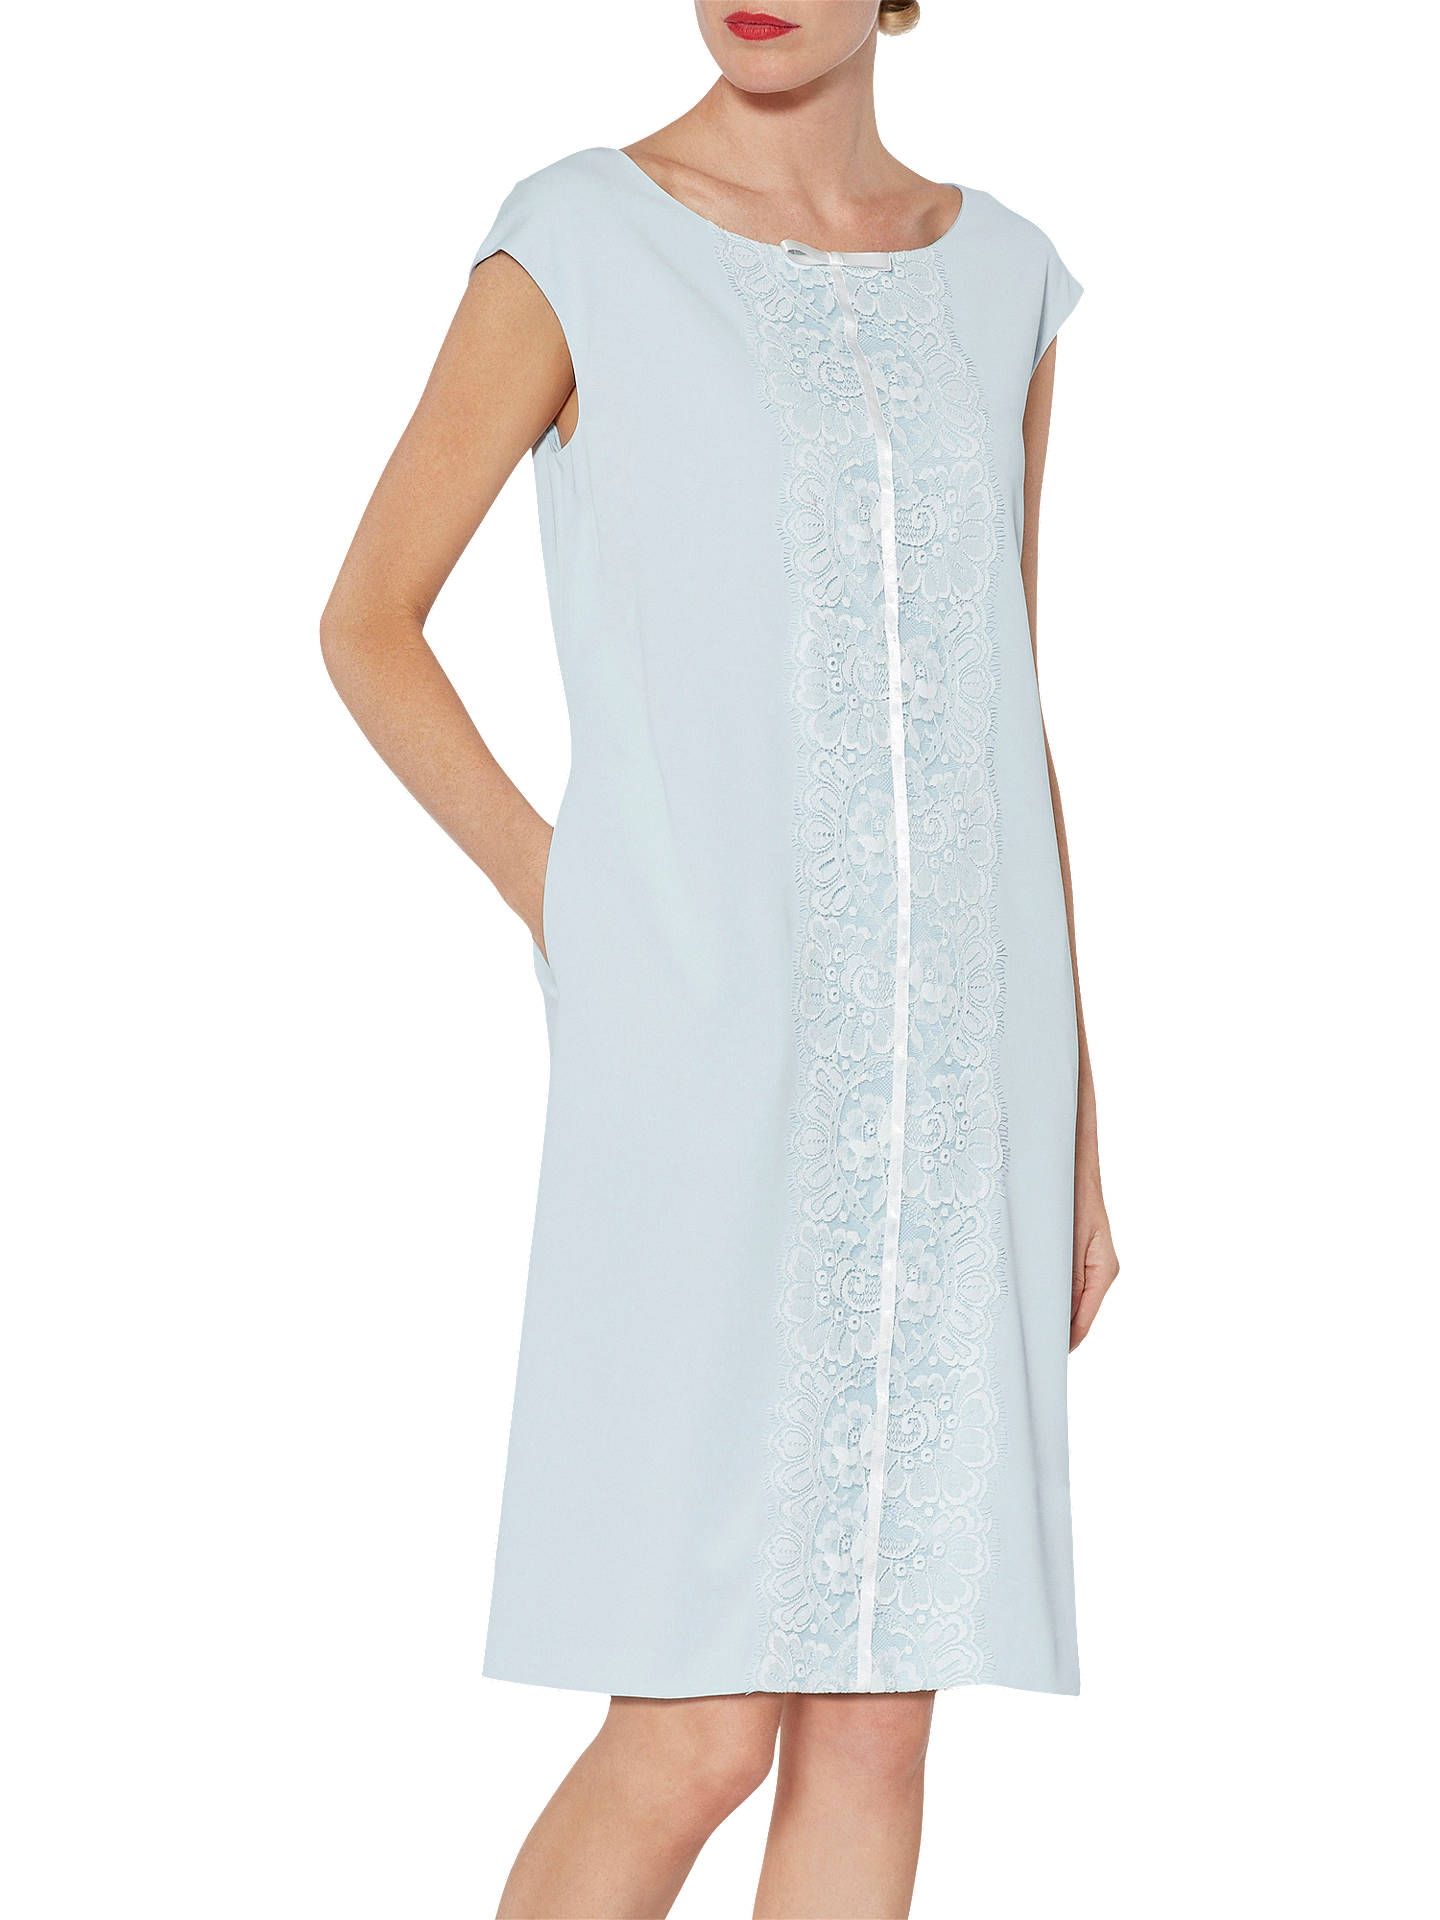 BuyGina Bacconi Isobel Lace Panel Dress, Blue Pearl, 8 Online at johnlewis.com